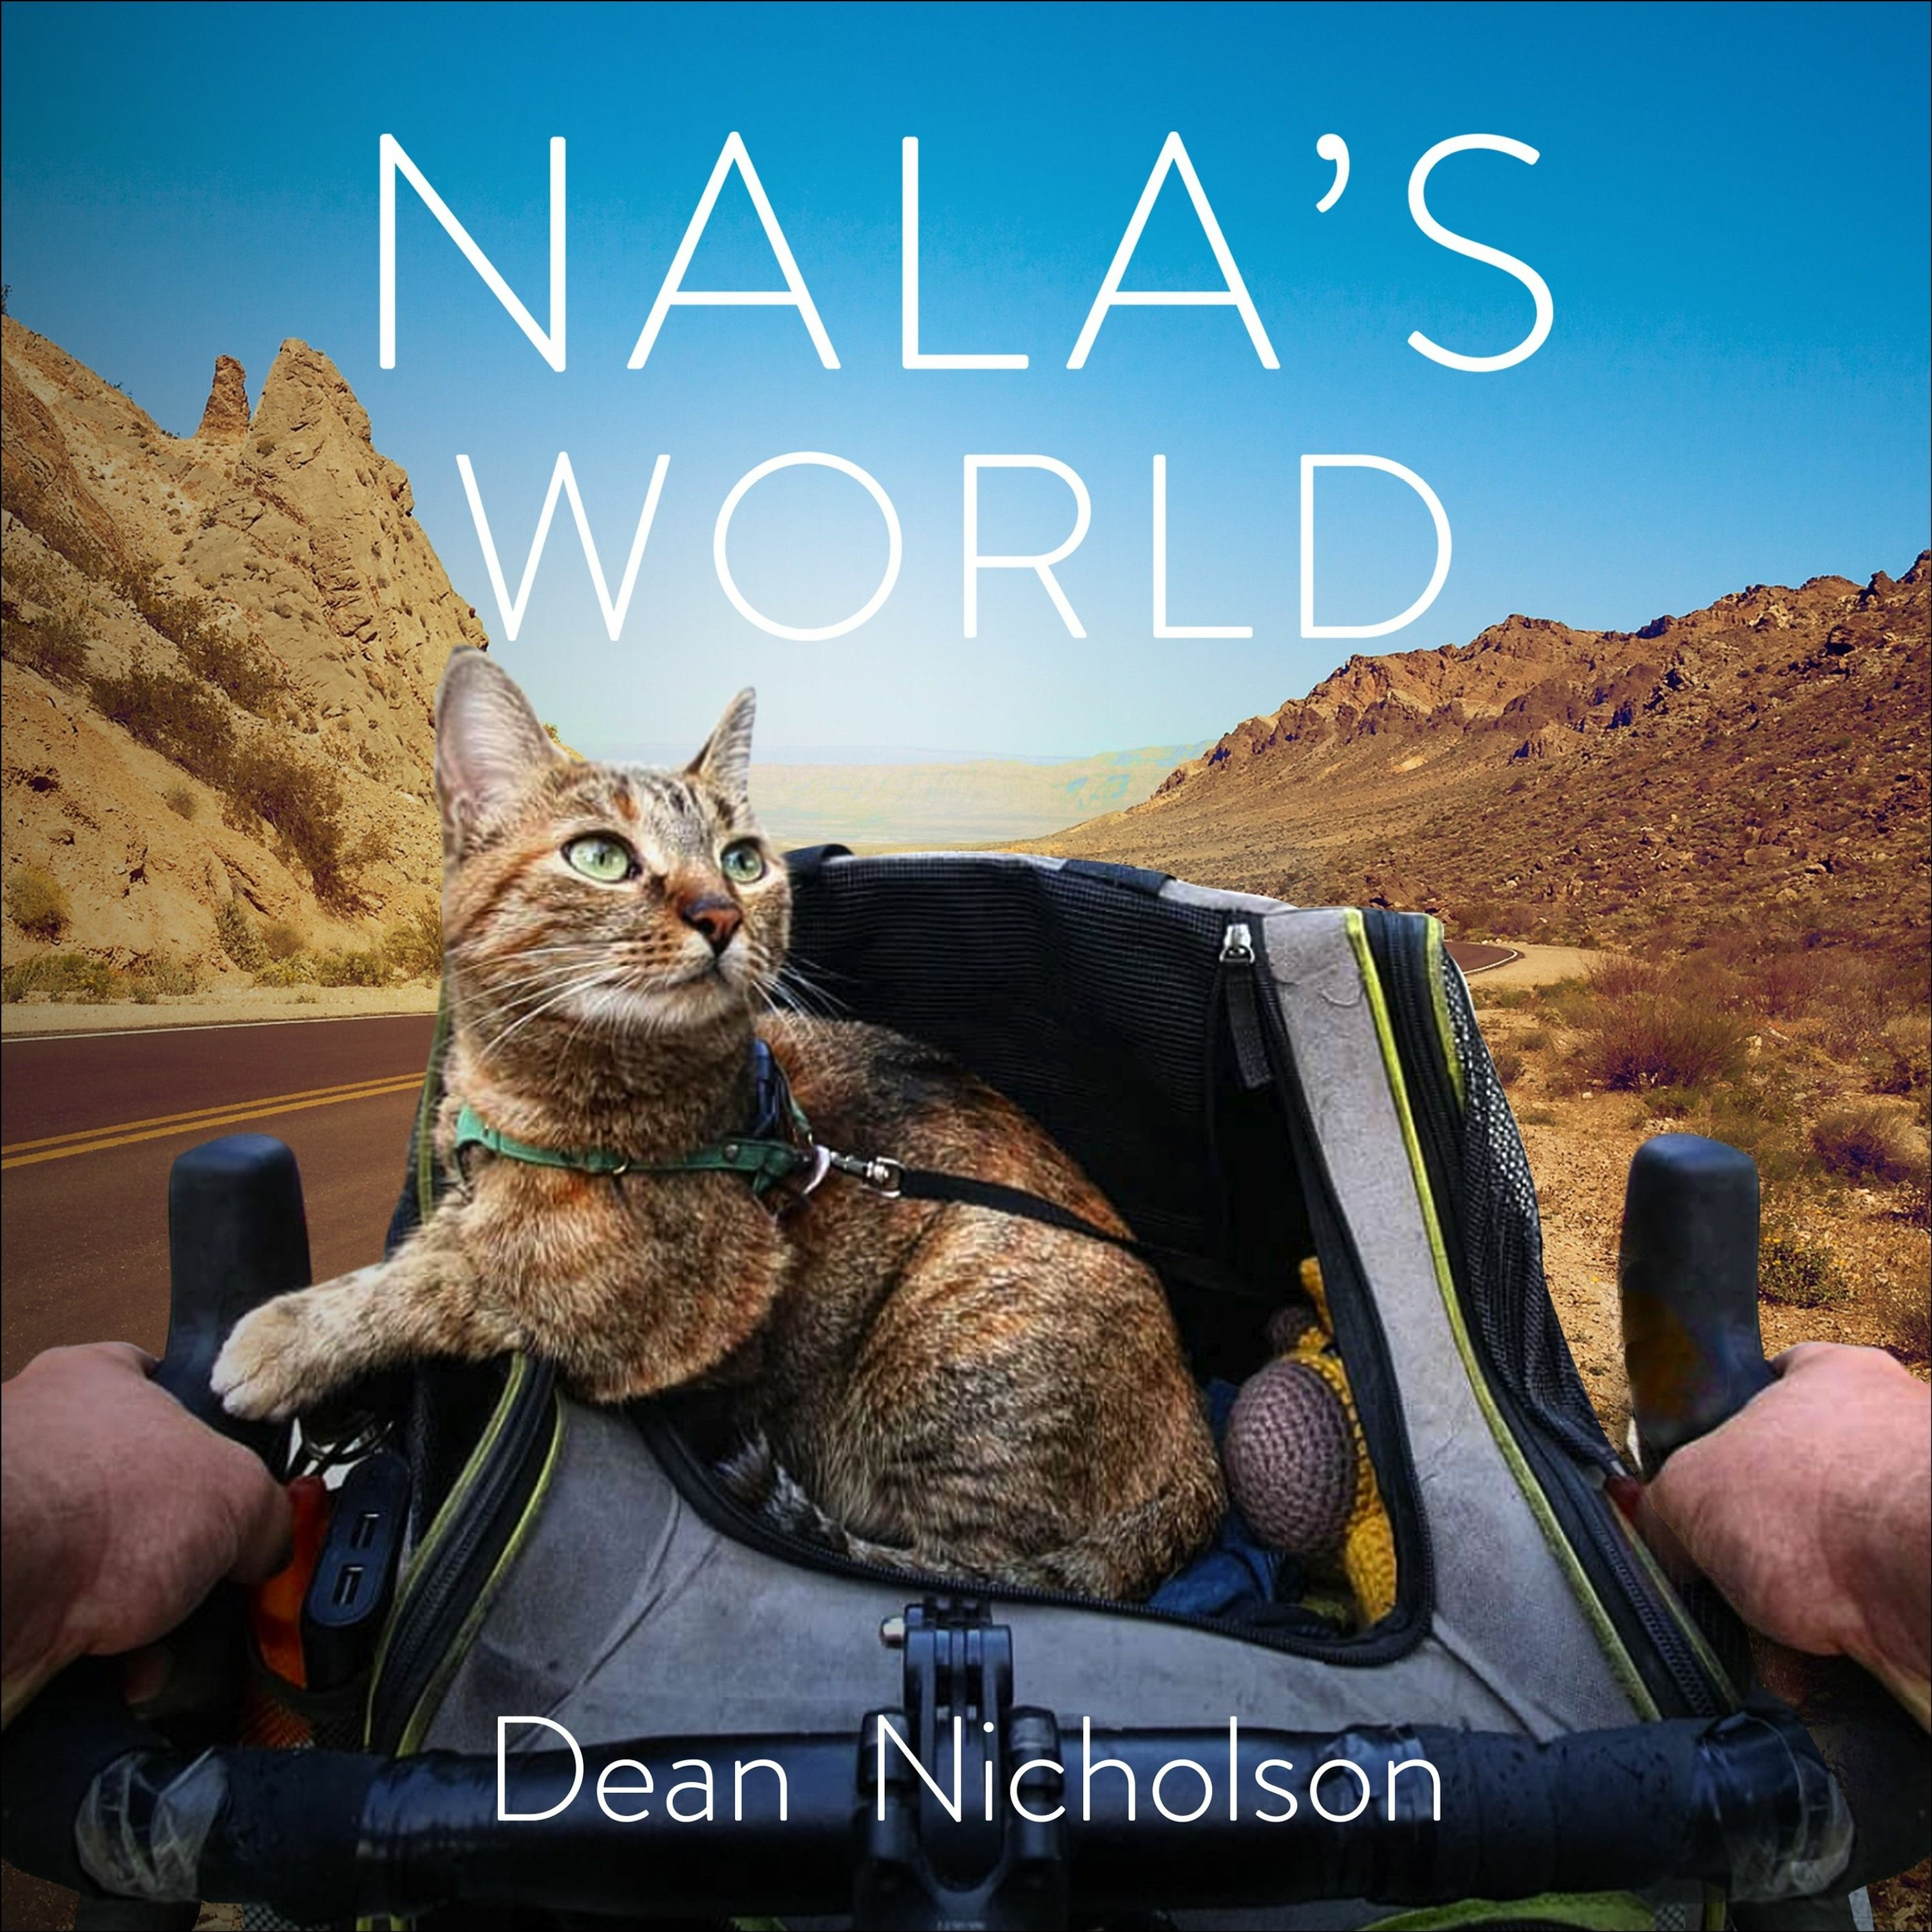 NALA'S WORLD by Dean Nicholson, read by Angus King - Audiobook extract